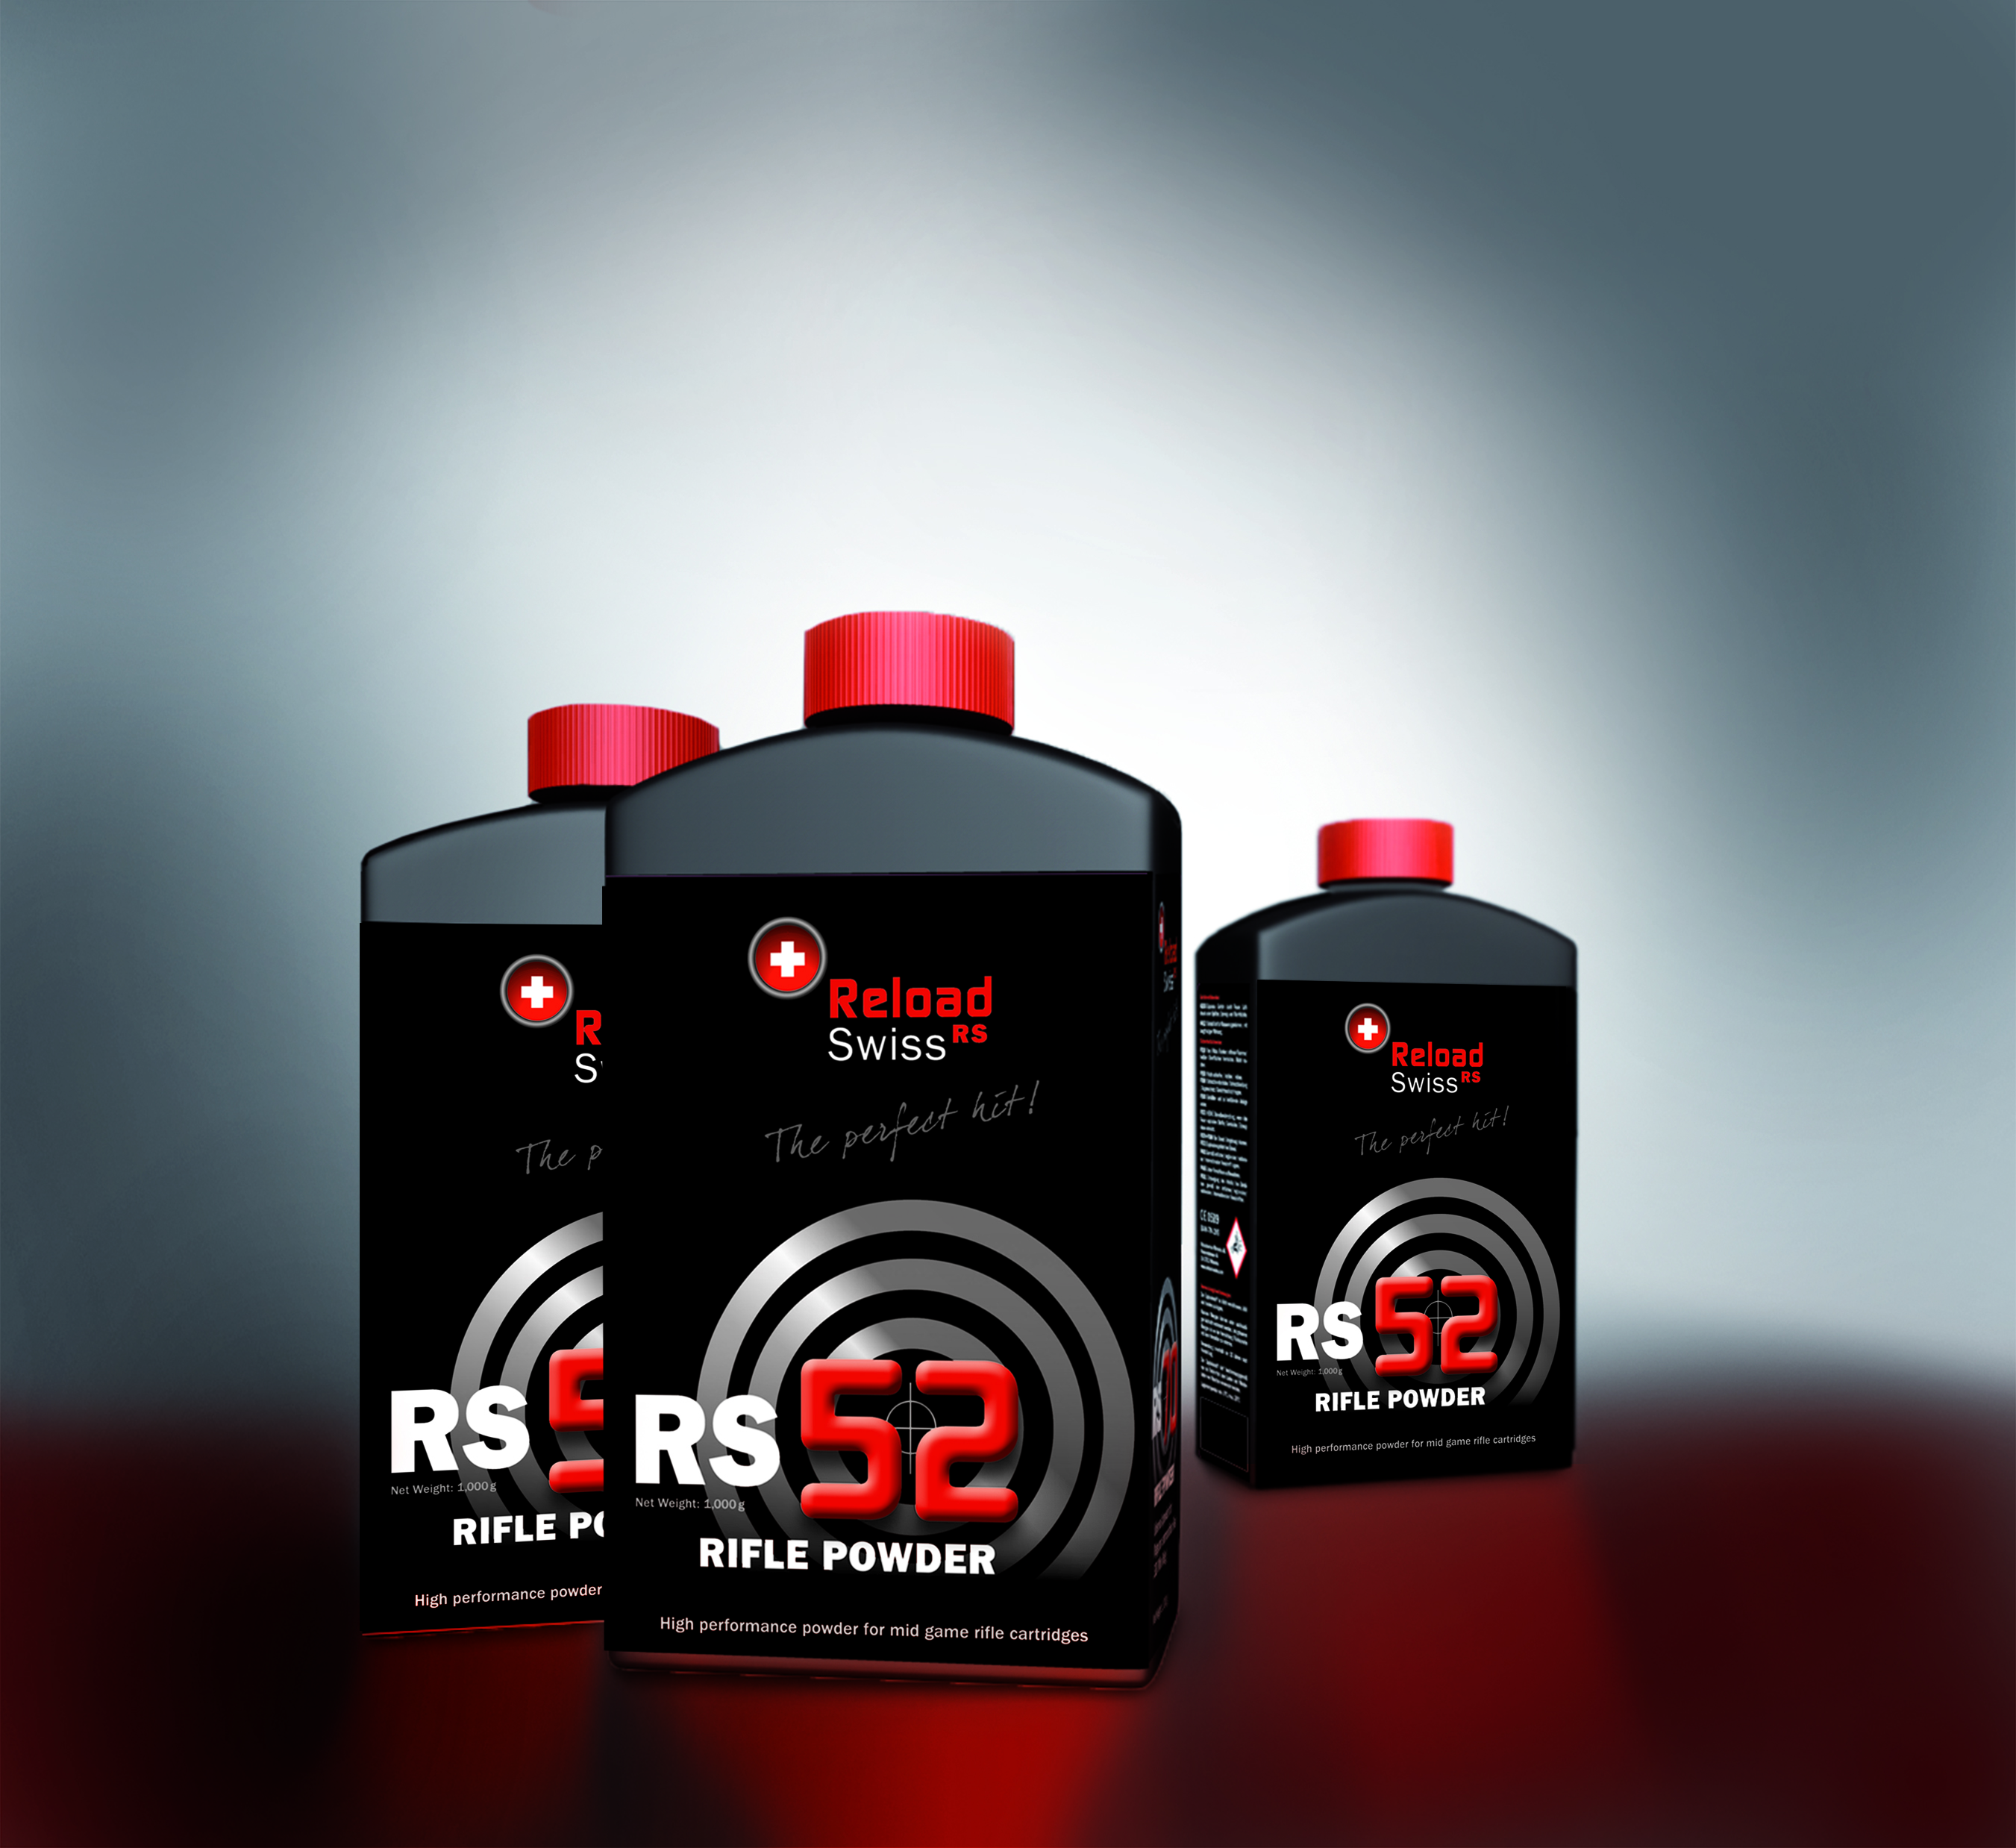 Reload Swiss RS 52 - 1,0 kg